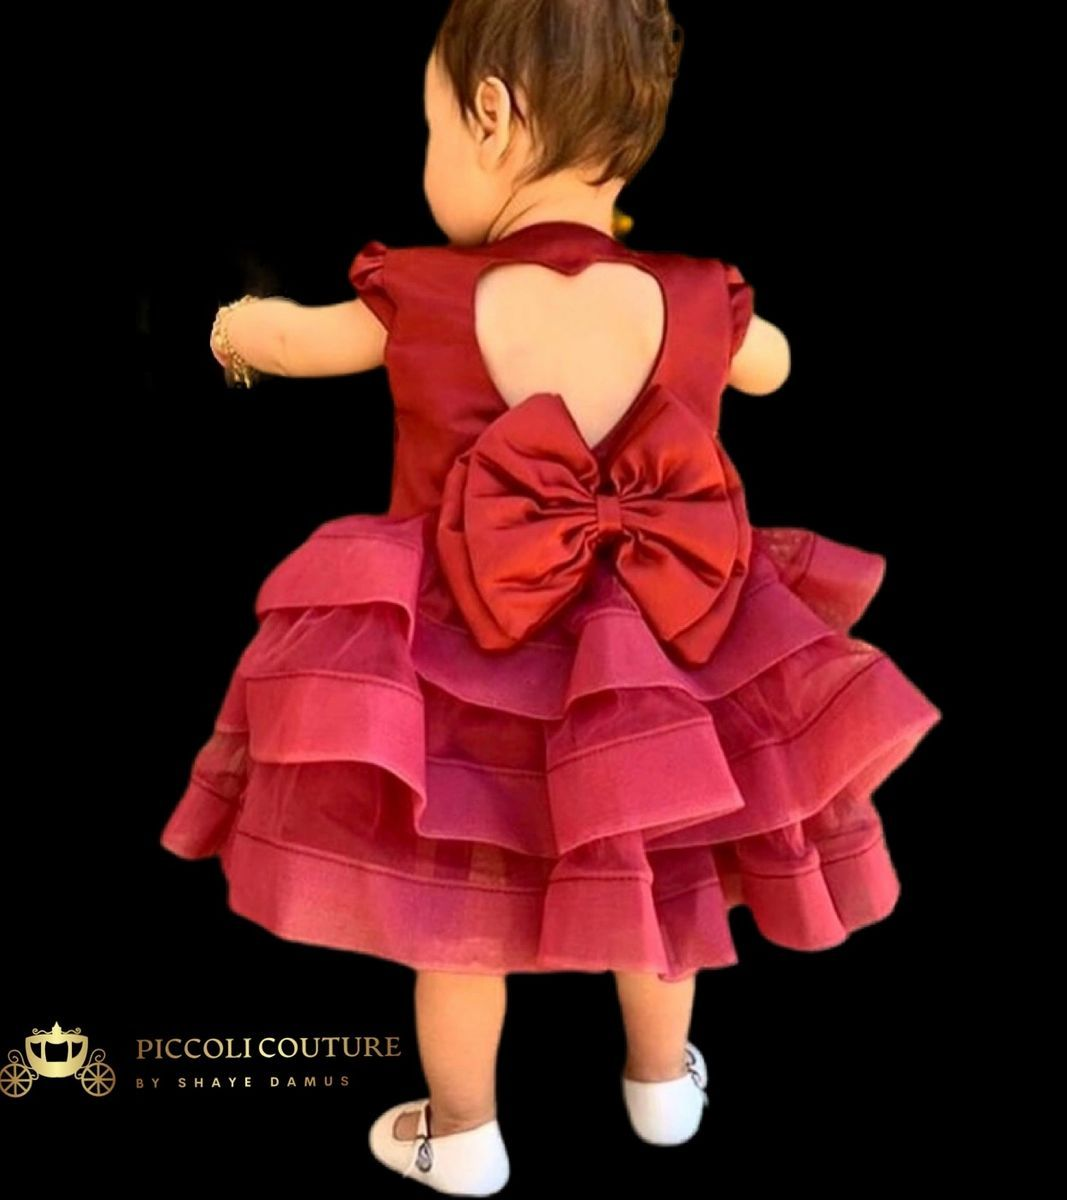 #couture #princess #butterfly #pink #coturekids #kidscouture #fashionkids #kidsfashion #piccolicouture #artphotography #kidzfashion #cutekidsfashion #postmyfashionkid #fashionkidsworld #kidsbabylove